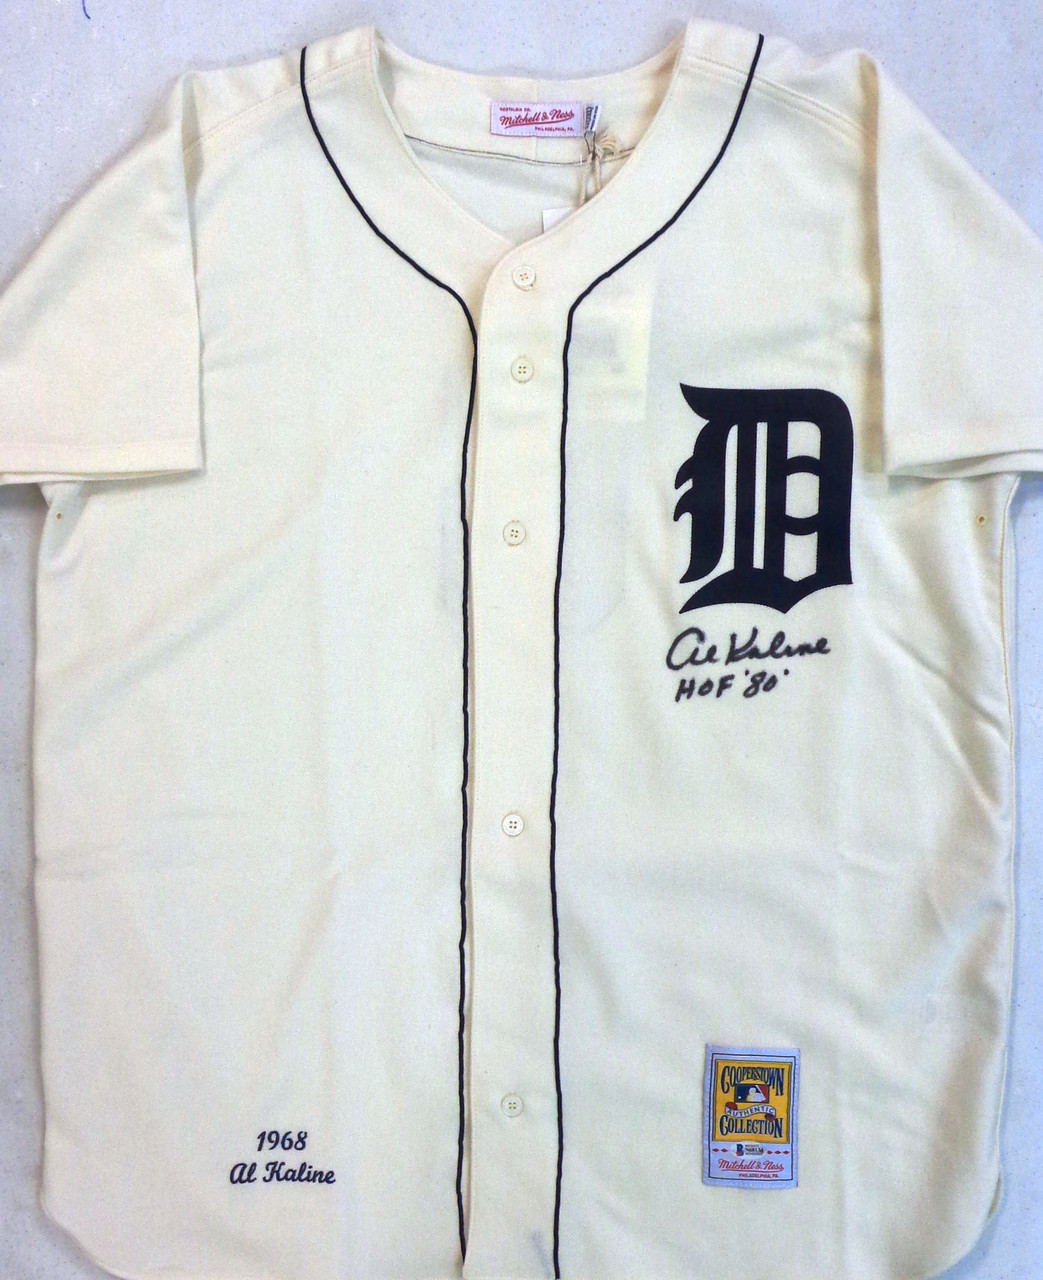 finest selection a9c07 9a6f1 Al Kaline Autographed Detroit Tigers 1968 Home Mitchell & Ness Jersey with